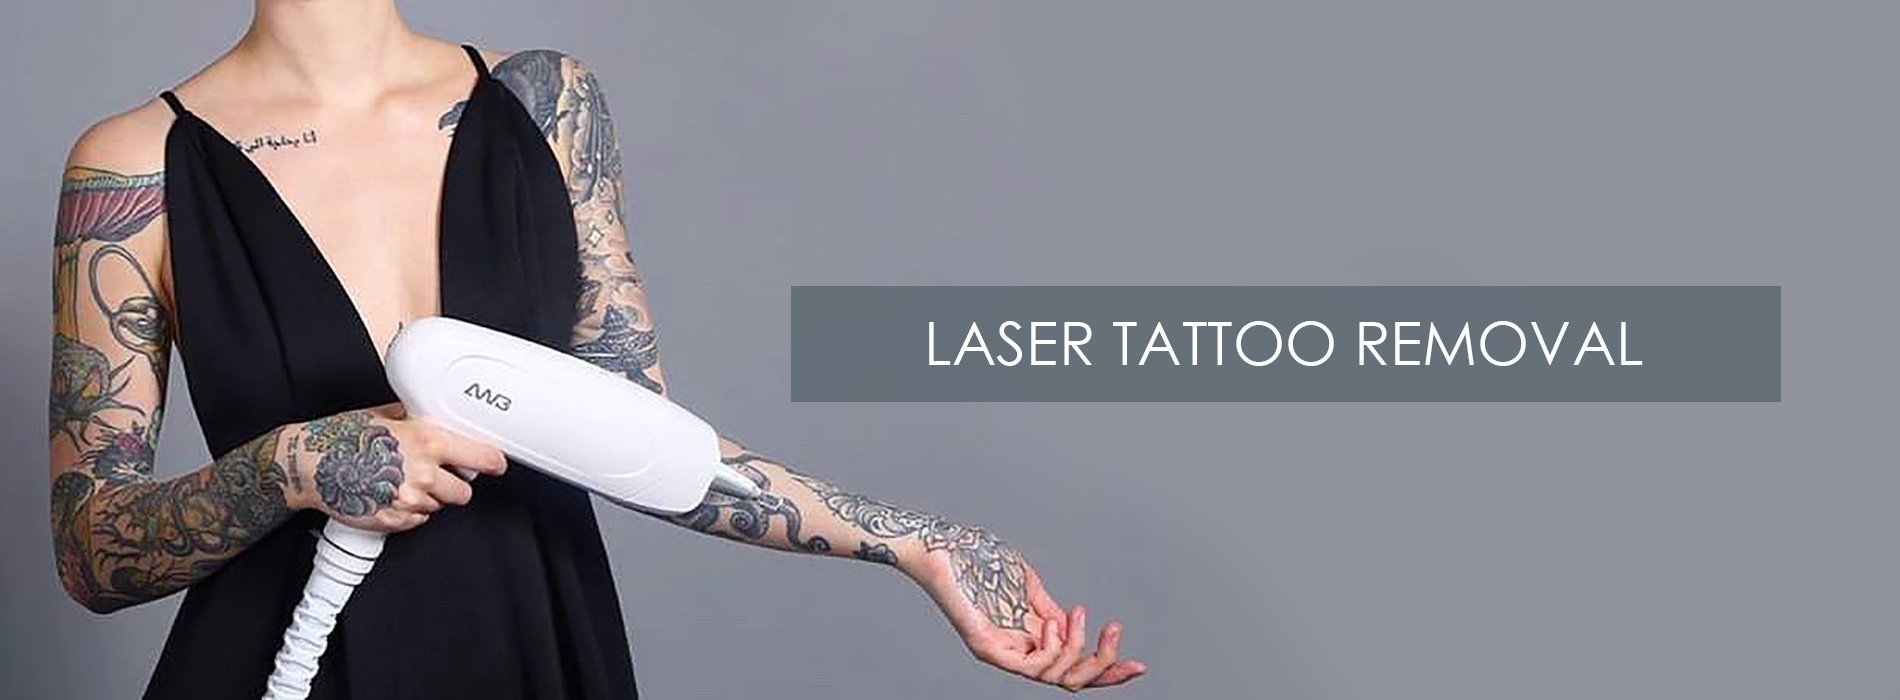 Laser Tattoo Removal at Dunstable Aesthetics Clinic